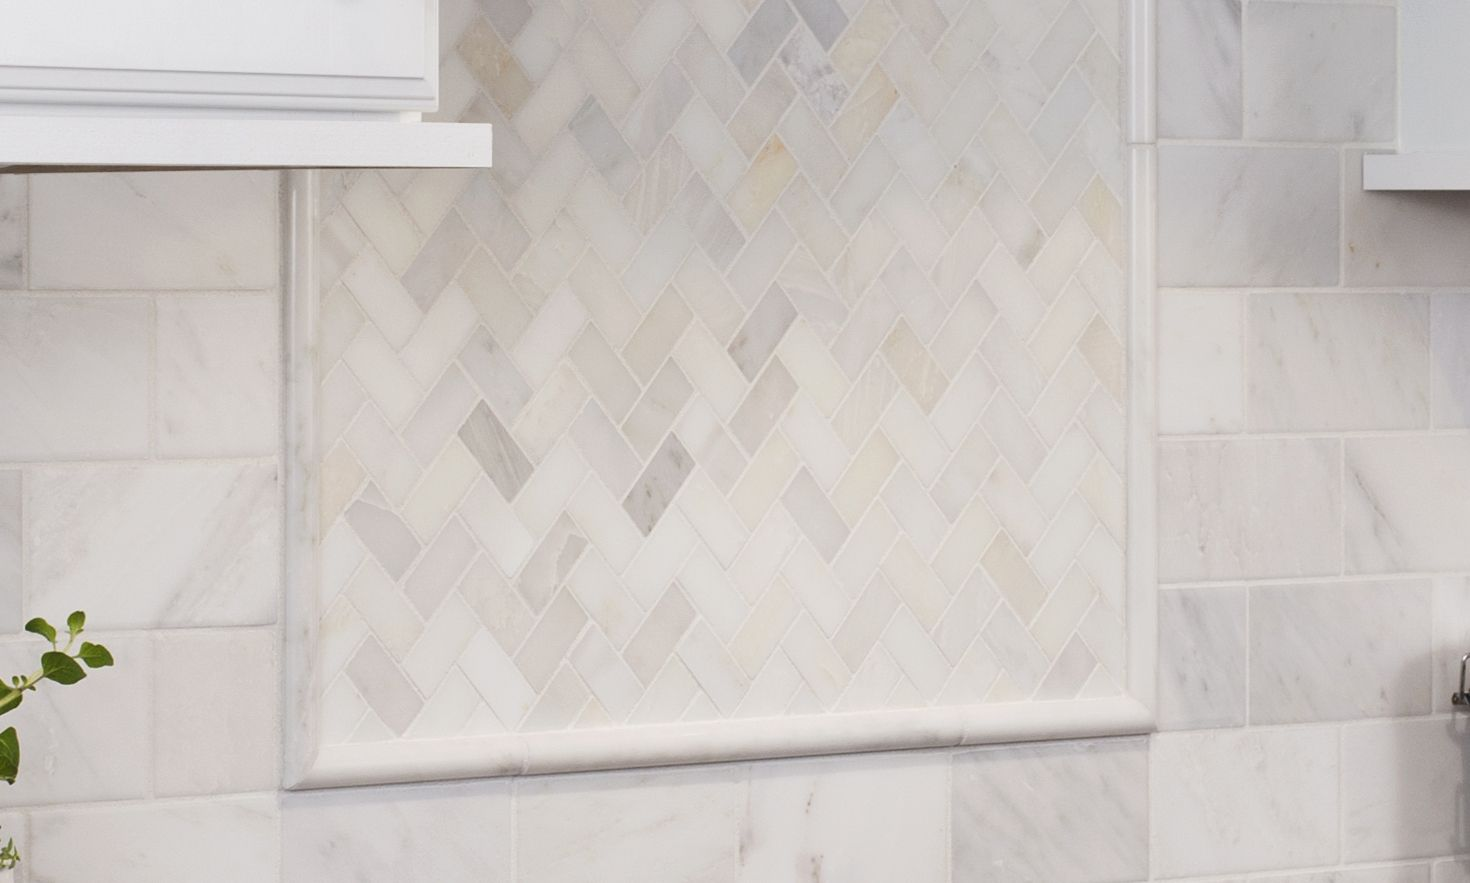 - The Marble Subway Tile With A Framed Herringbone Accent Above The